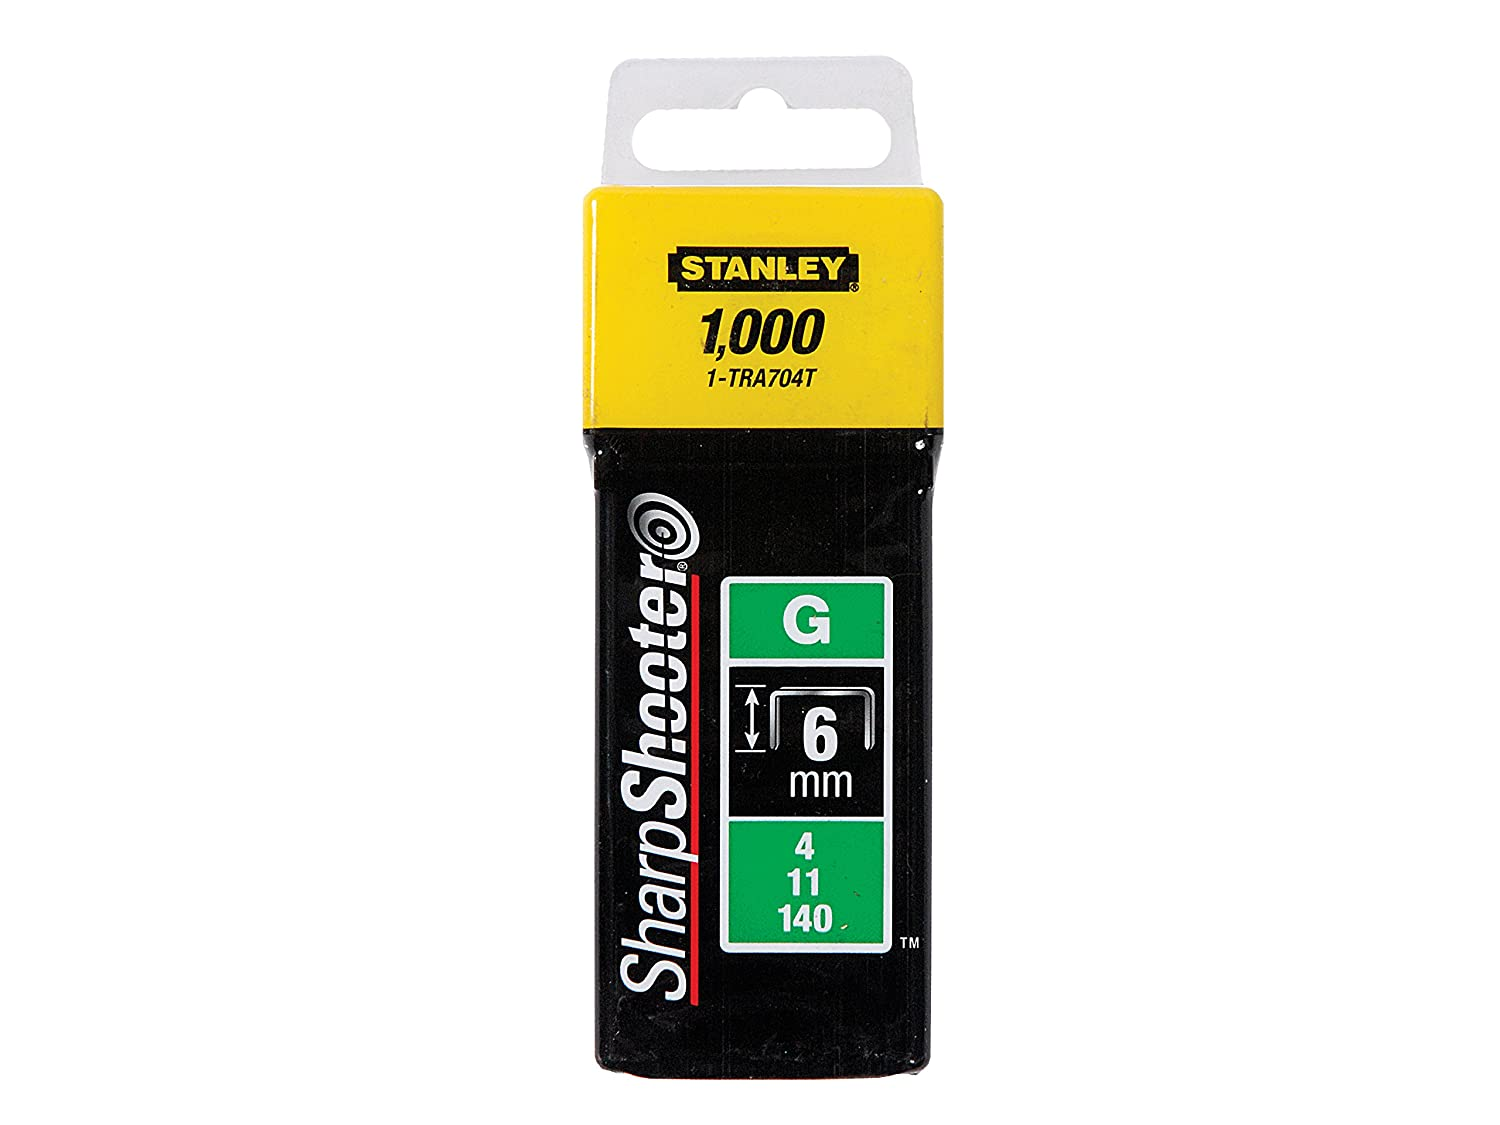 Grapa tipo g STANLEY 1-TRA705T 8mm 1000 u. 4//11//140